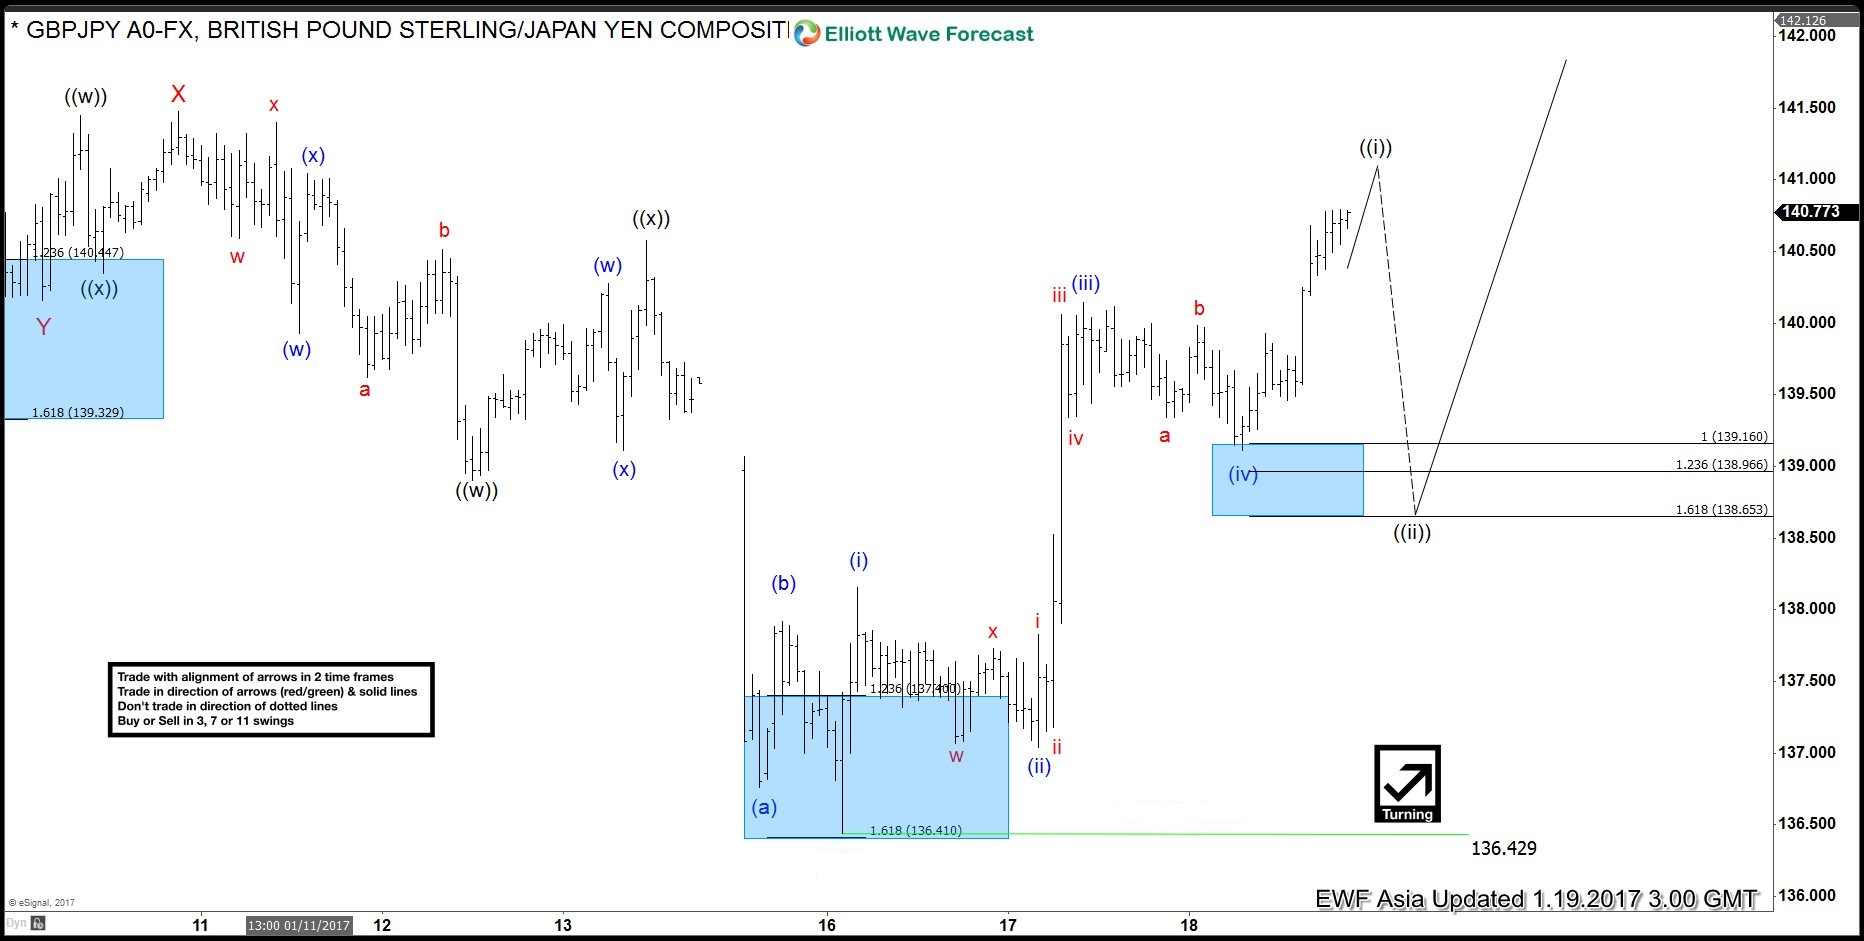 GBPJPY shows 5 waves off the low